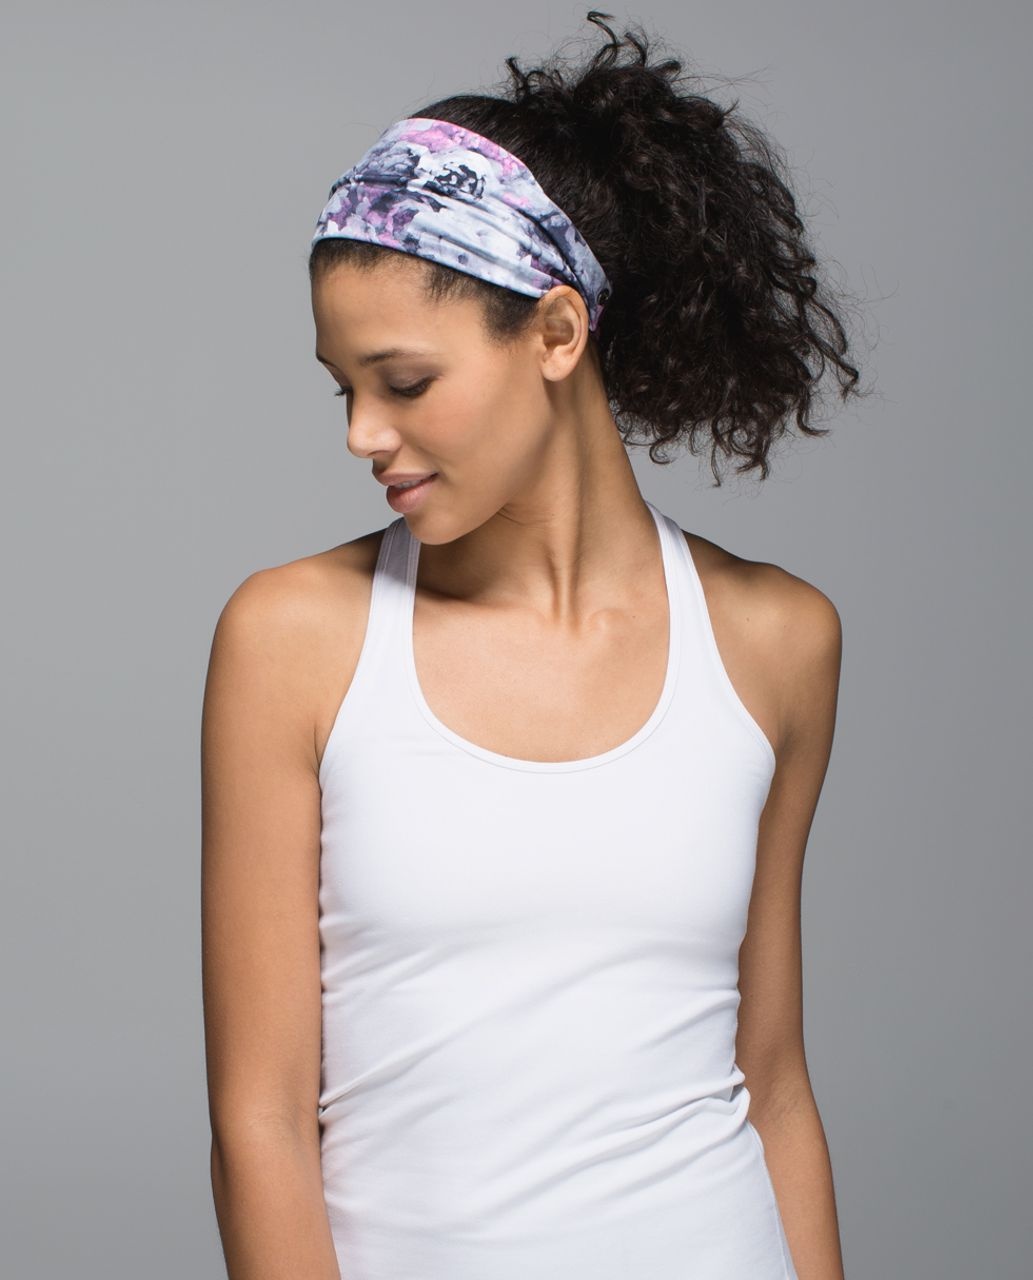 Lululemon Fringe Fighter Headband - Moody Mirage White Deep Navy / Heathered Black Cherry